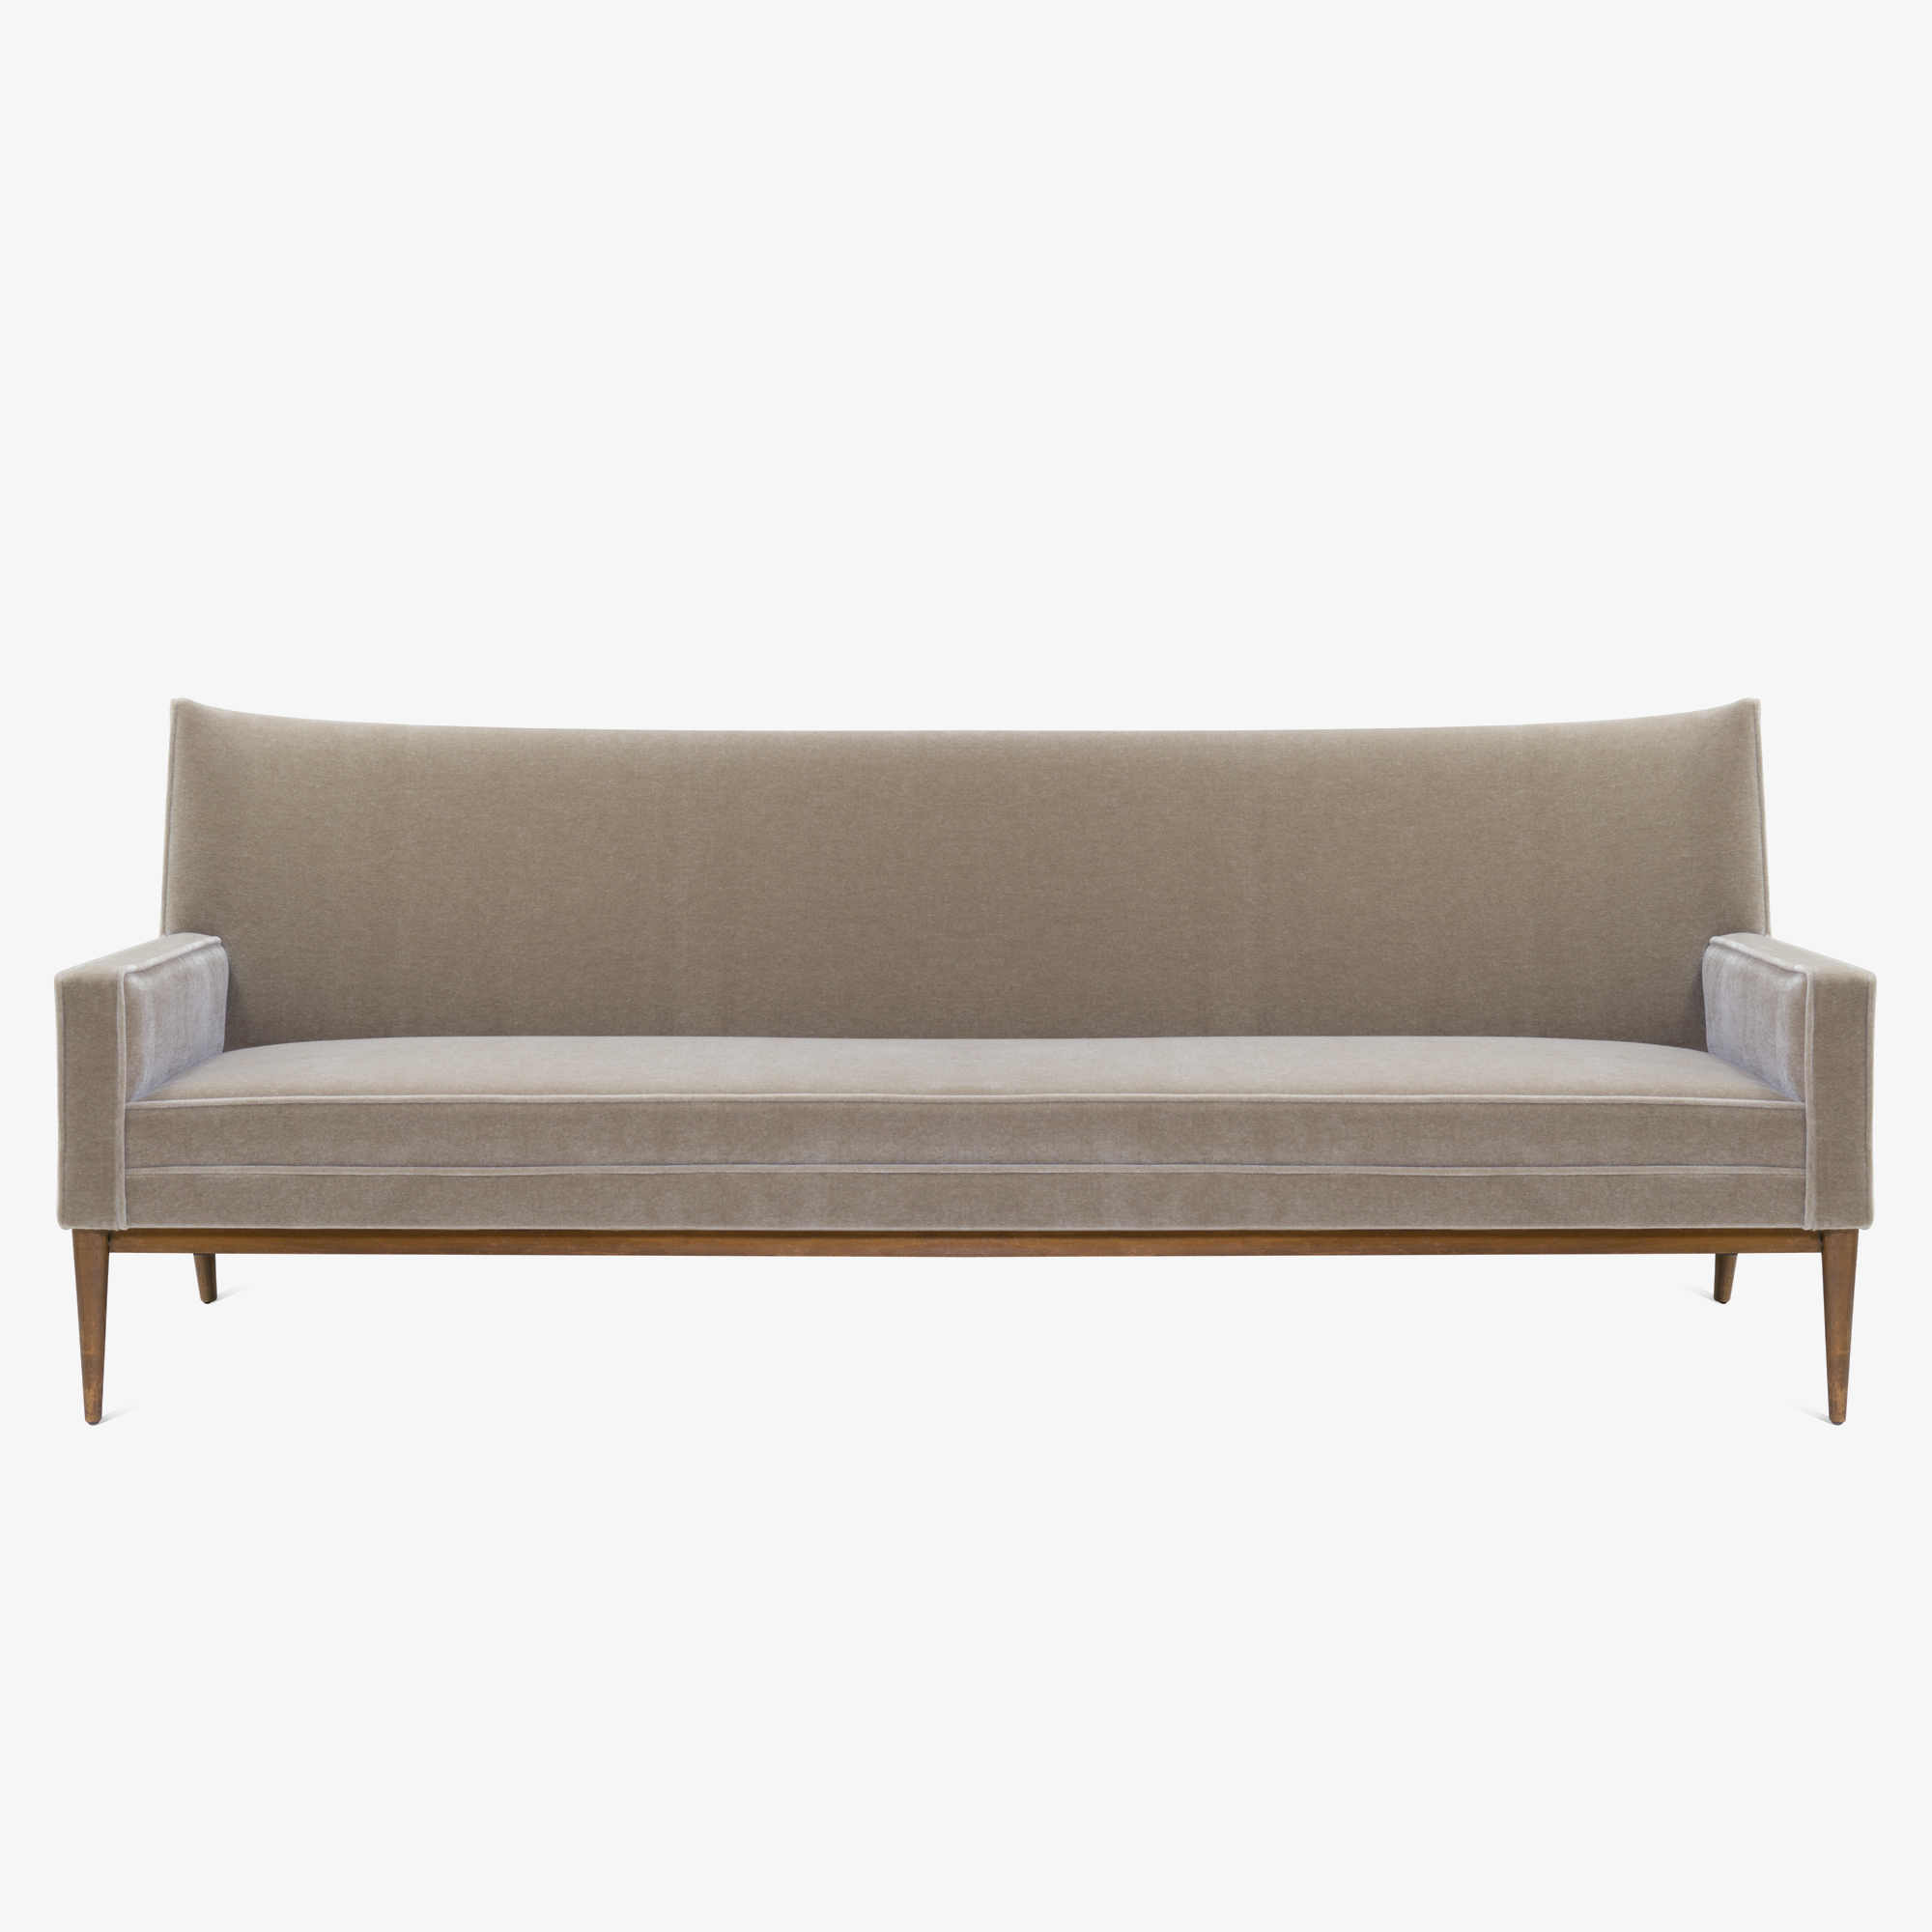 3-Seat %22Model 1307%22 Sofa in Mohair by Paul McCobb for Directional2.png